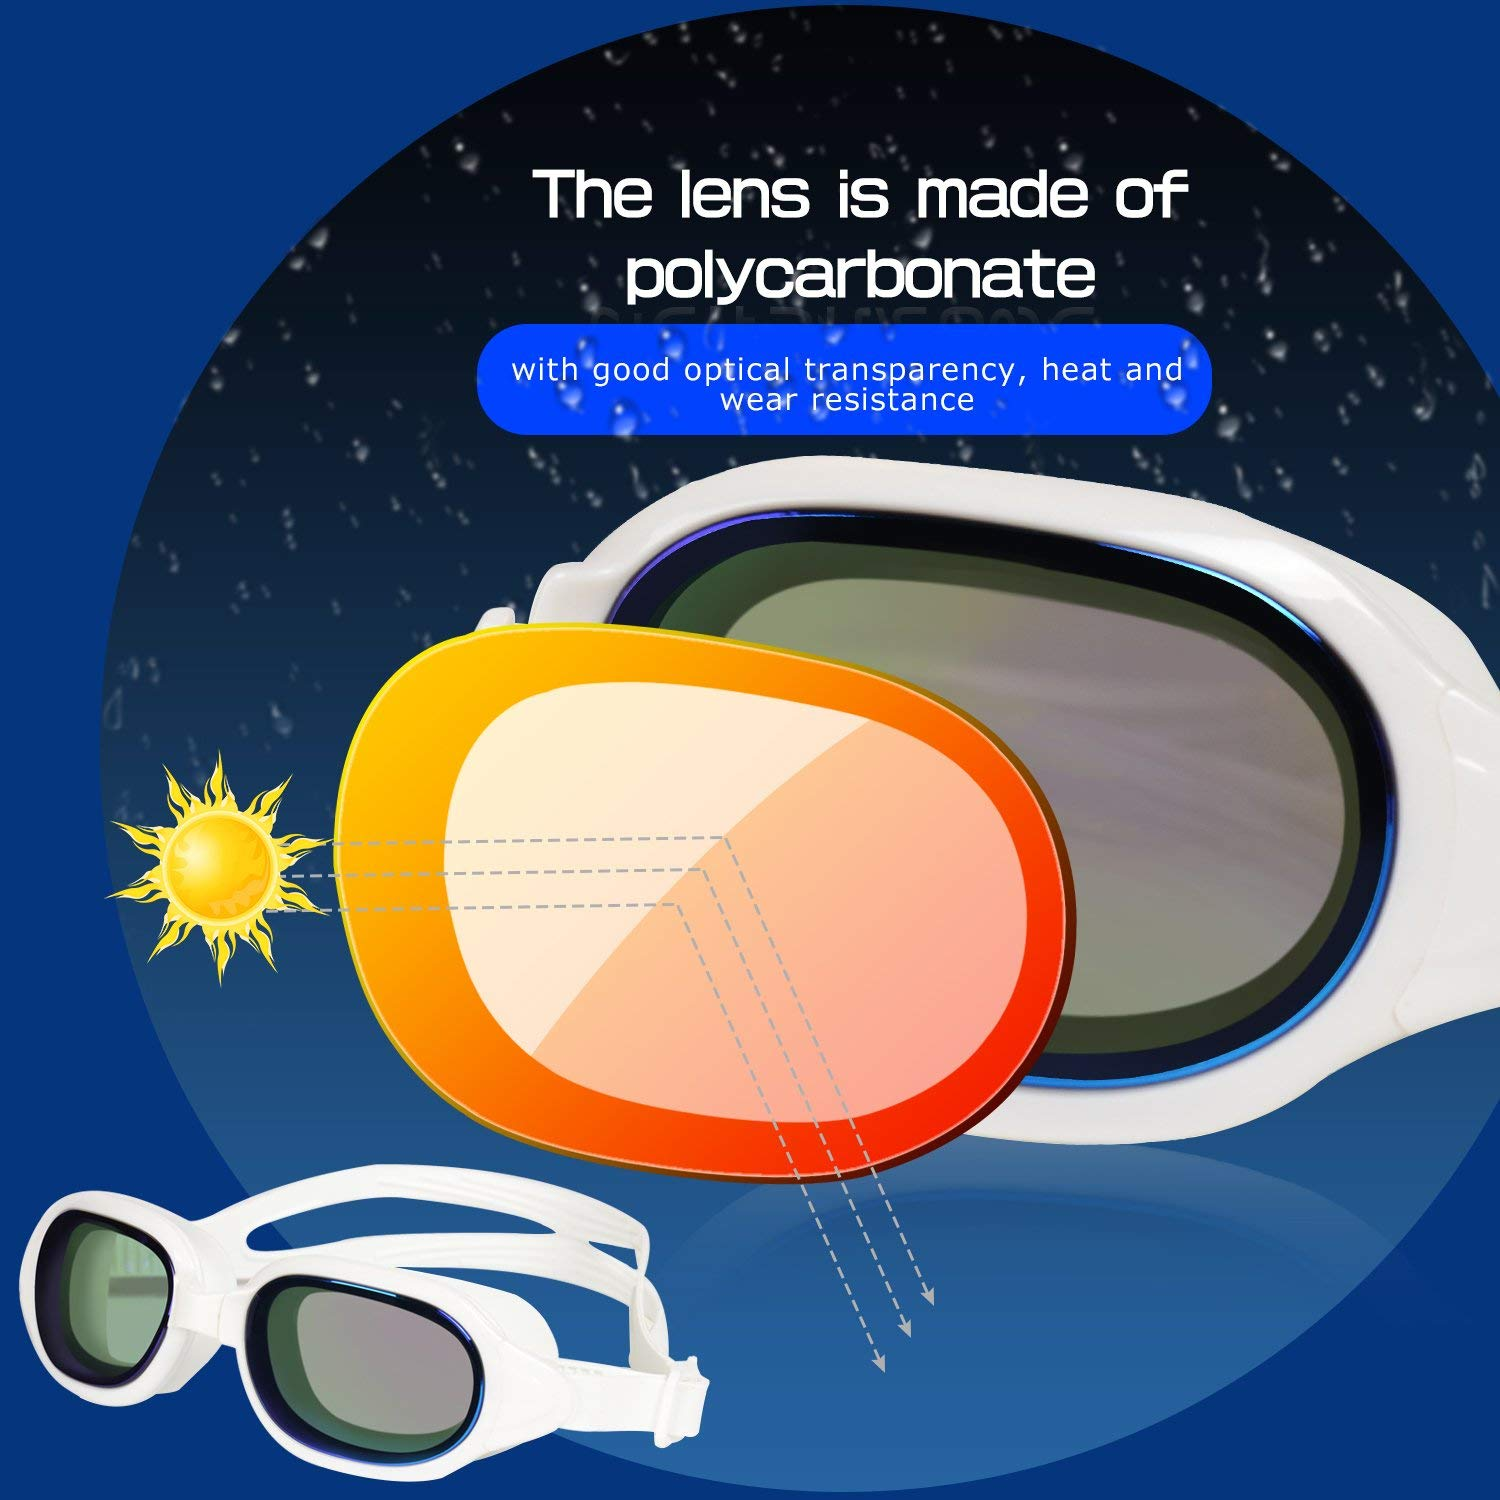 Premium Polarized Big Large Frame Swim Goggles Swimming Goggles Anti Fog No Leaking with UV Protection and Clear Lens Wide-Vision for Men Women Adult Youth with Free Case,Nose Clip and Ear Plugs